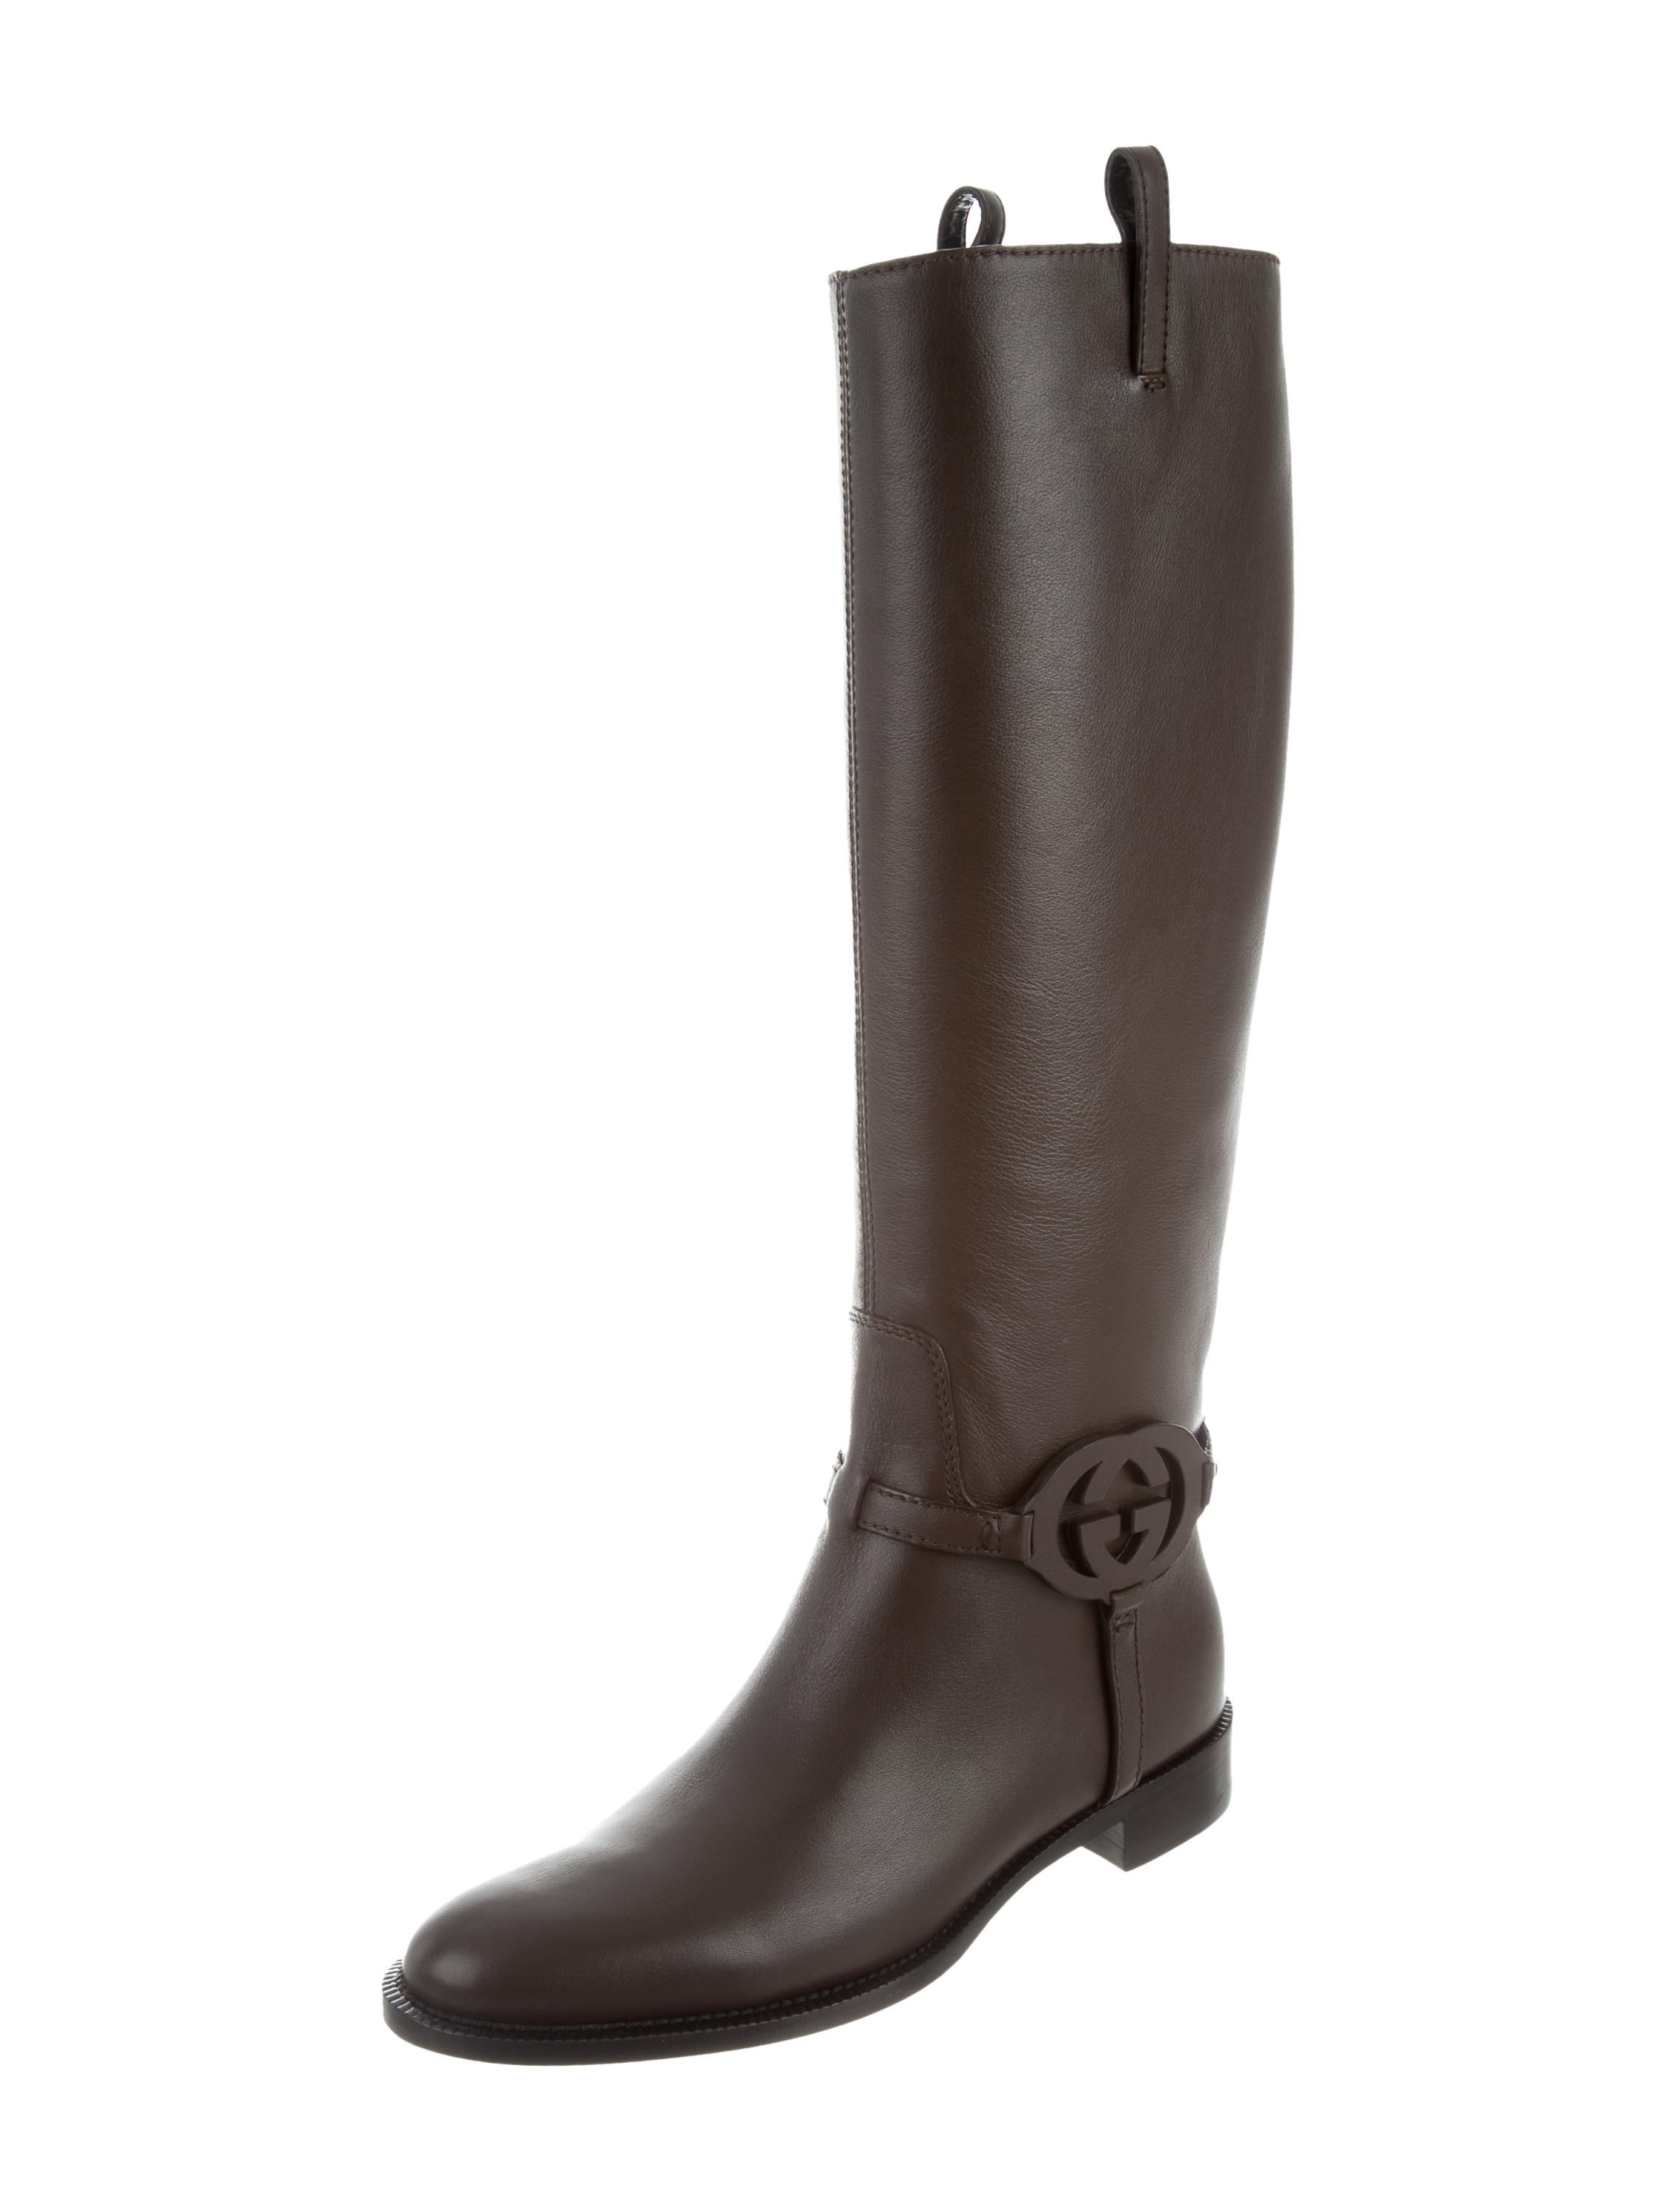 79113519792 Gucci Leather Riding Boots w  Tags - Shoes - GUC171470 .